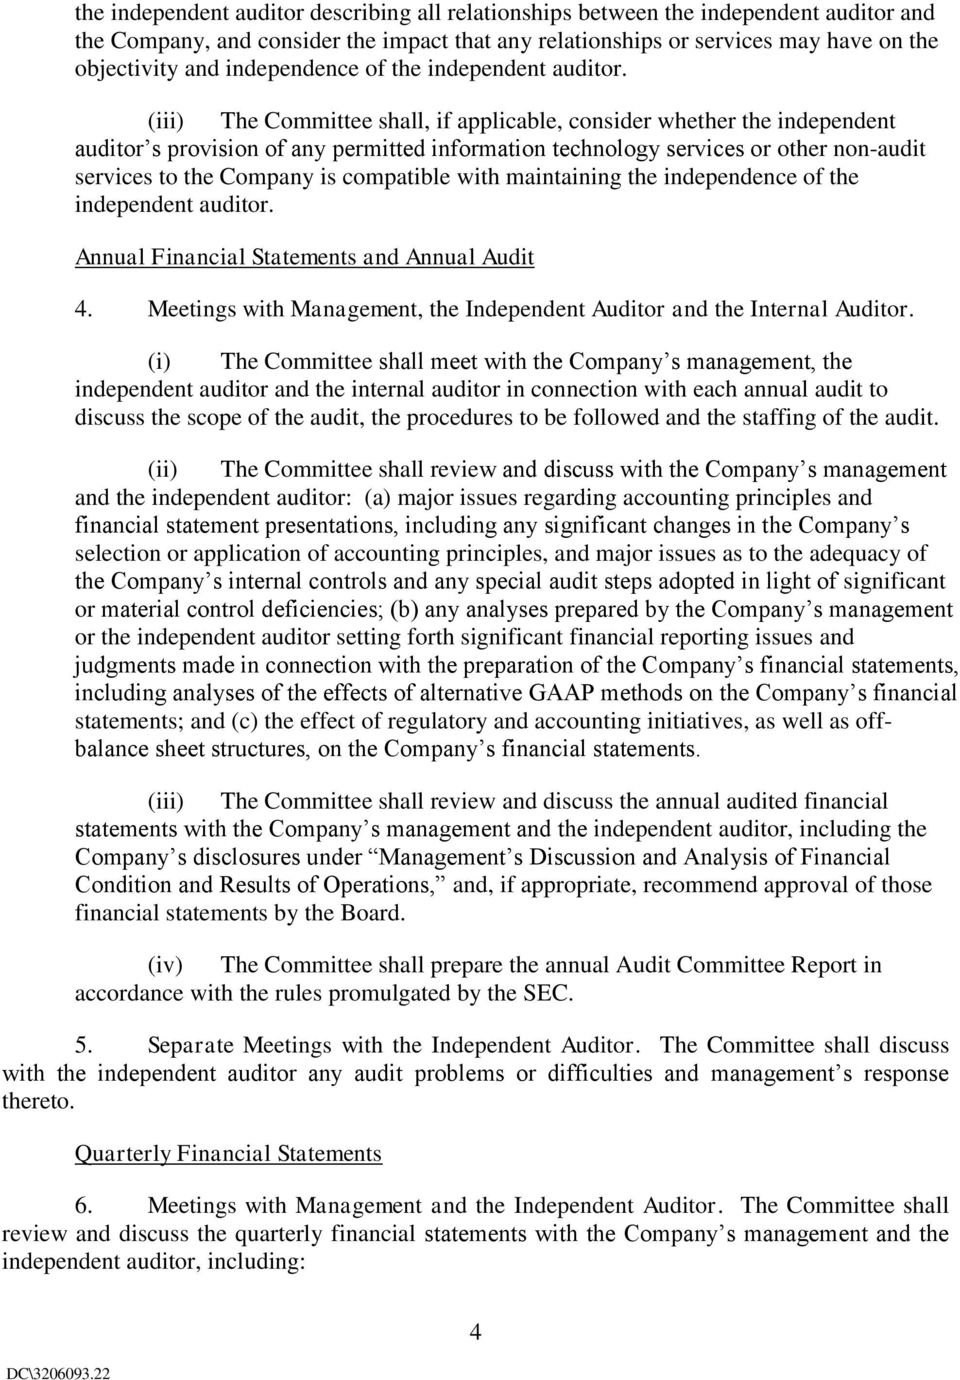 (iii) The Committee shall, if applicable, consider whether the independent auditor s provision of any permitted information technology services or other non-audit services to the Company is